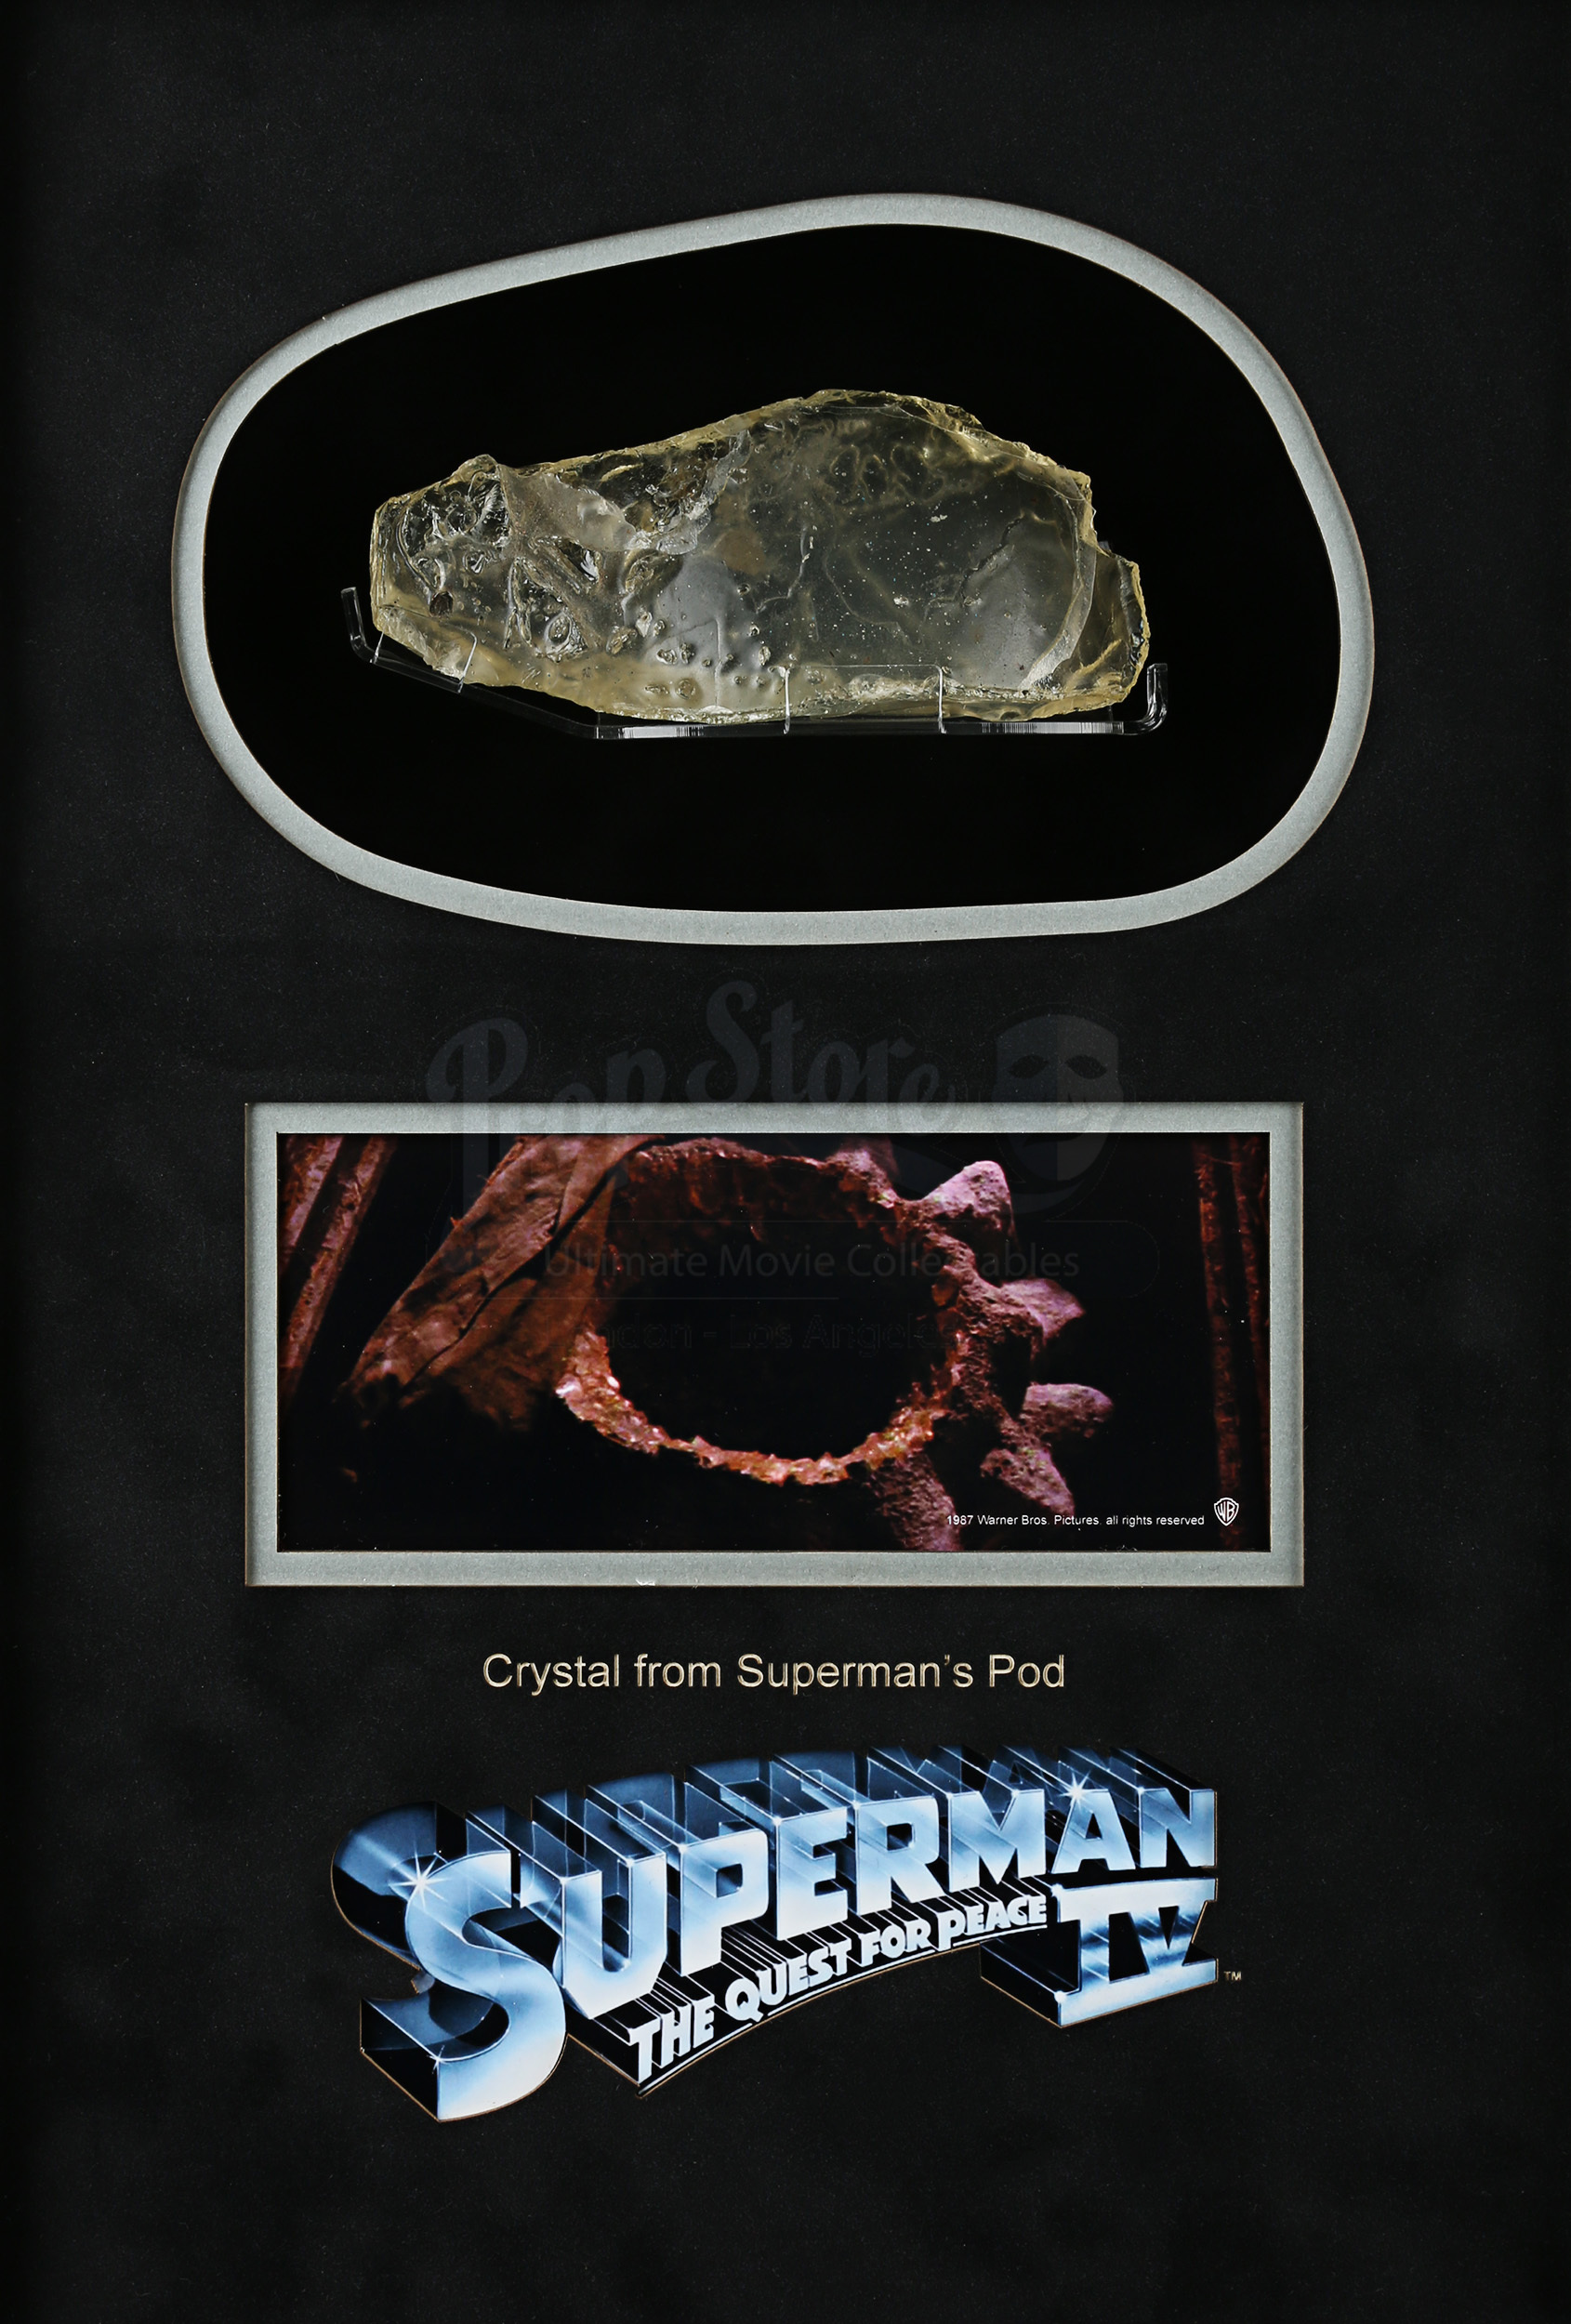 Rent A Pod >> Supermans (Christopher Reeve) Pod Crystal Piece Display   Prop Store - Ultimate Movie Collectables